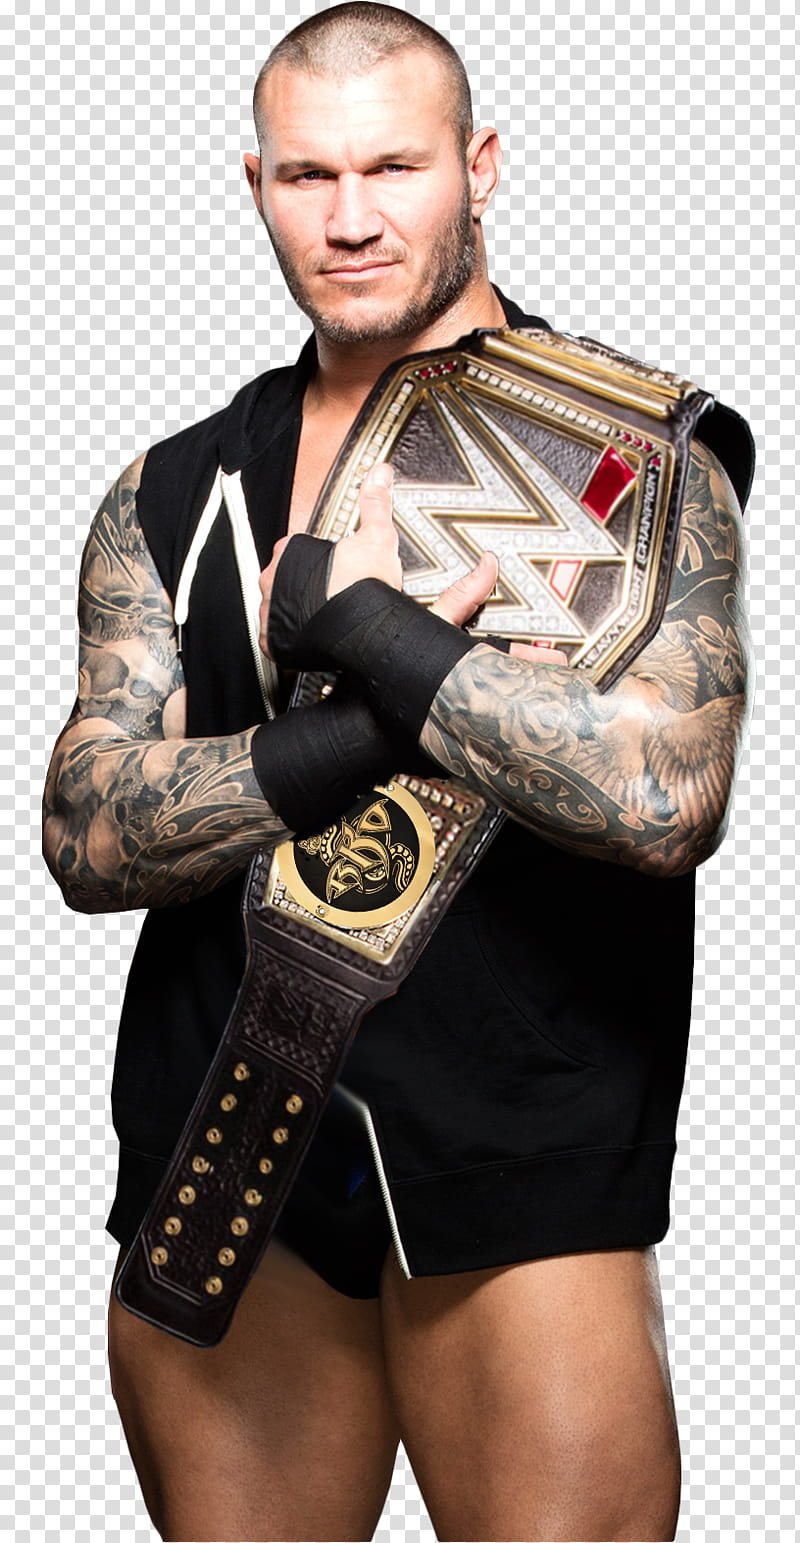 Randy Orton WWE Champion render transparent background PNG.